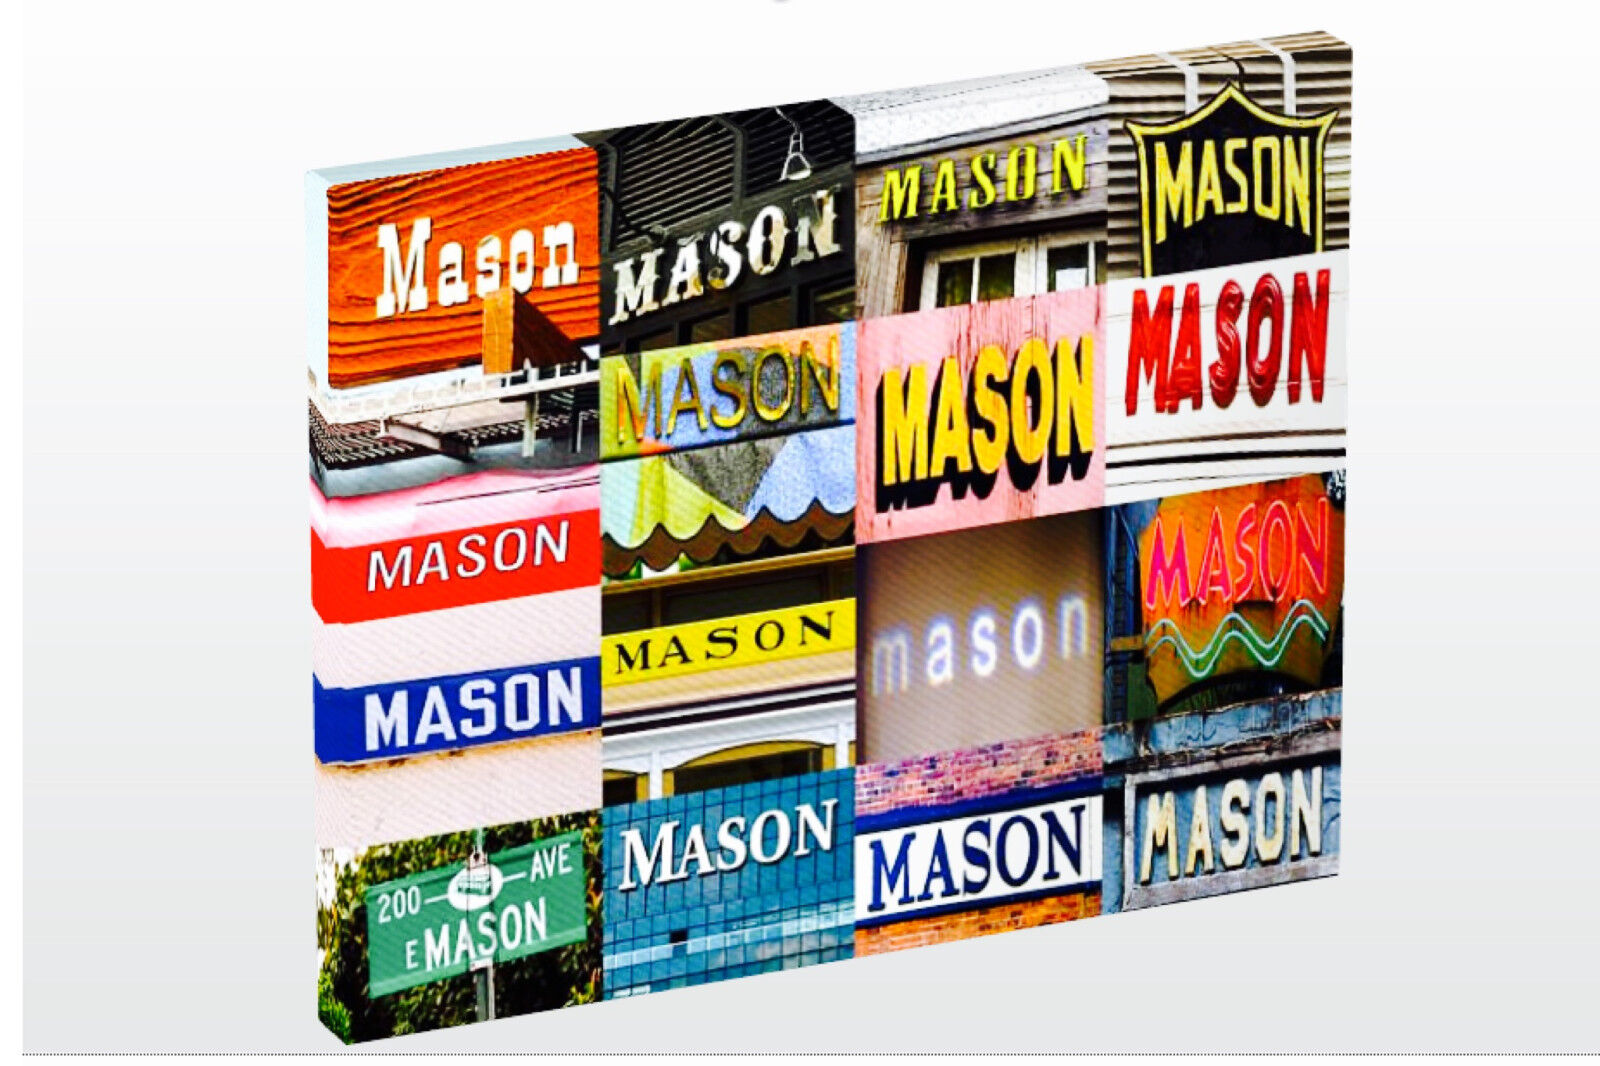 Personalized Photo Canvas featuring the name MASON in photos of signs